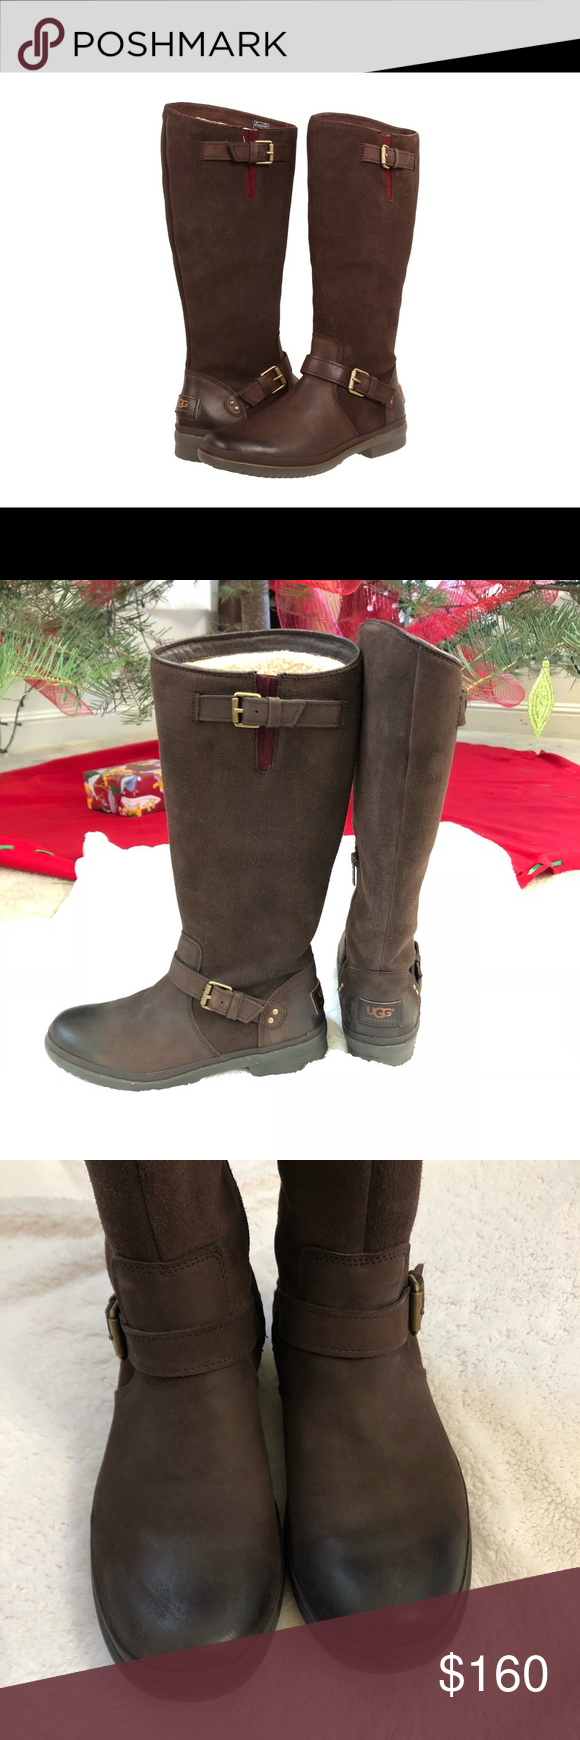 e284f40a1b7 Ugg Thomson Waterproof leather riding boot 7.5 'Thomsen' from UGG ...